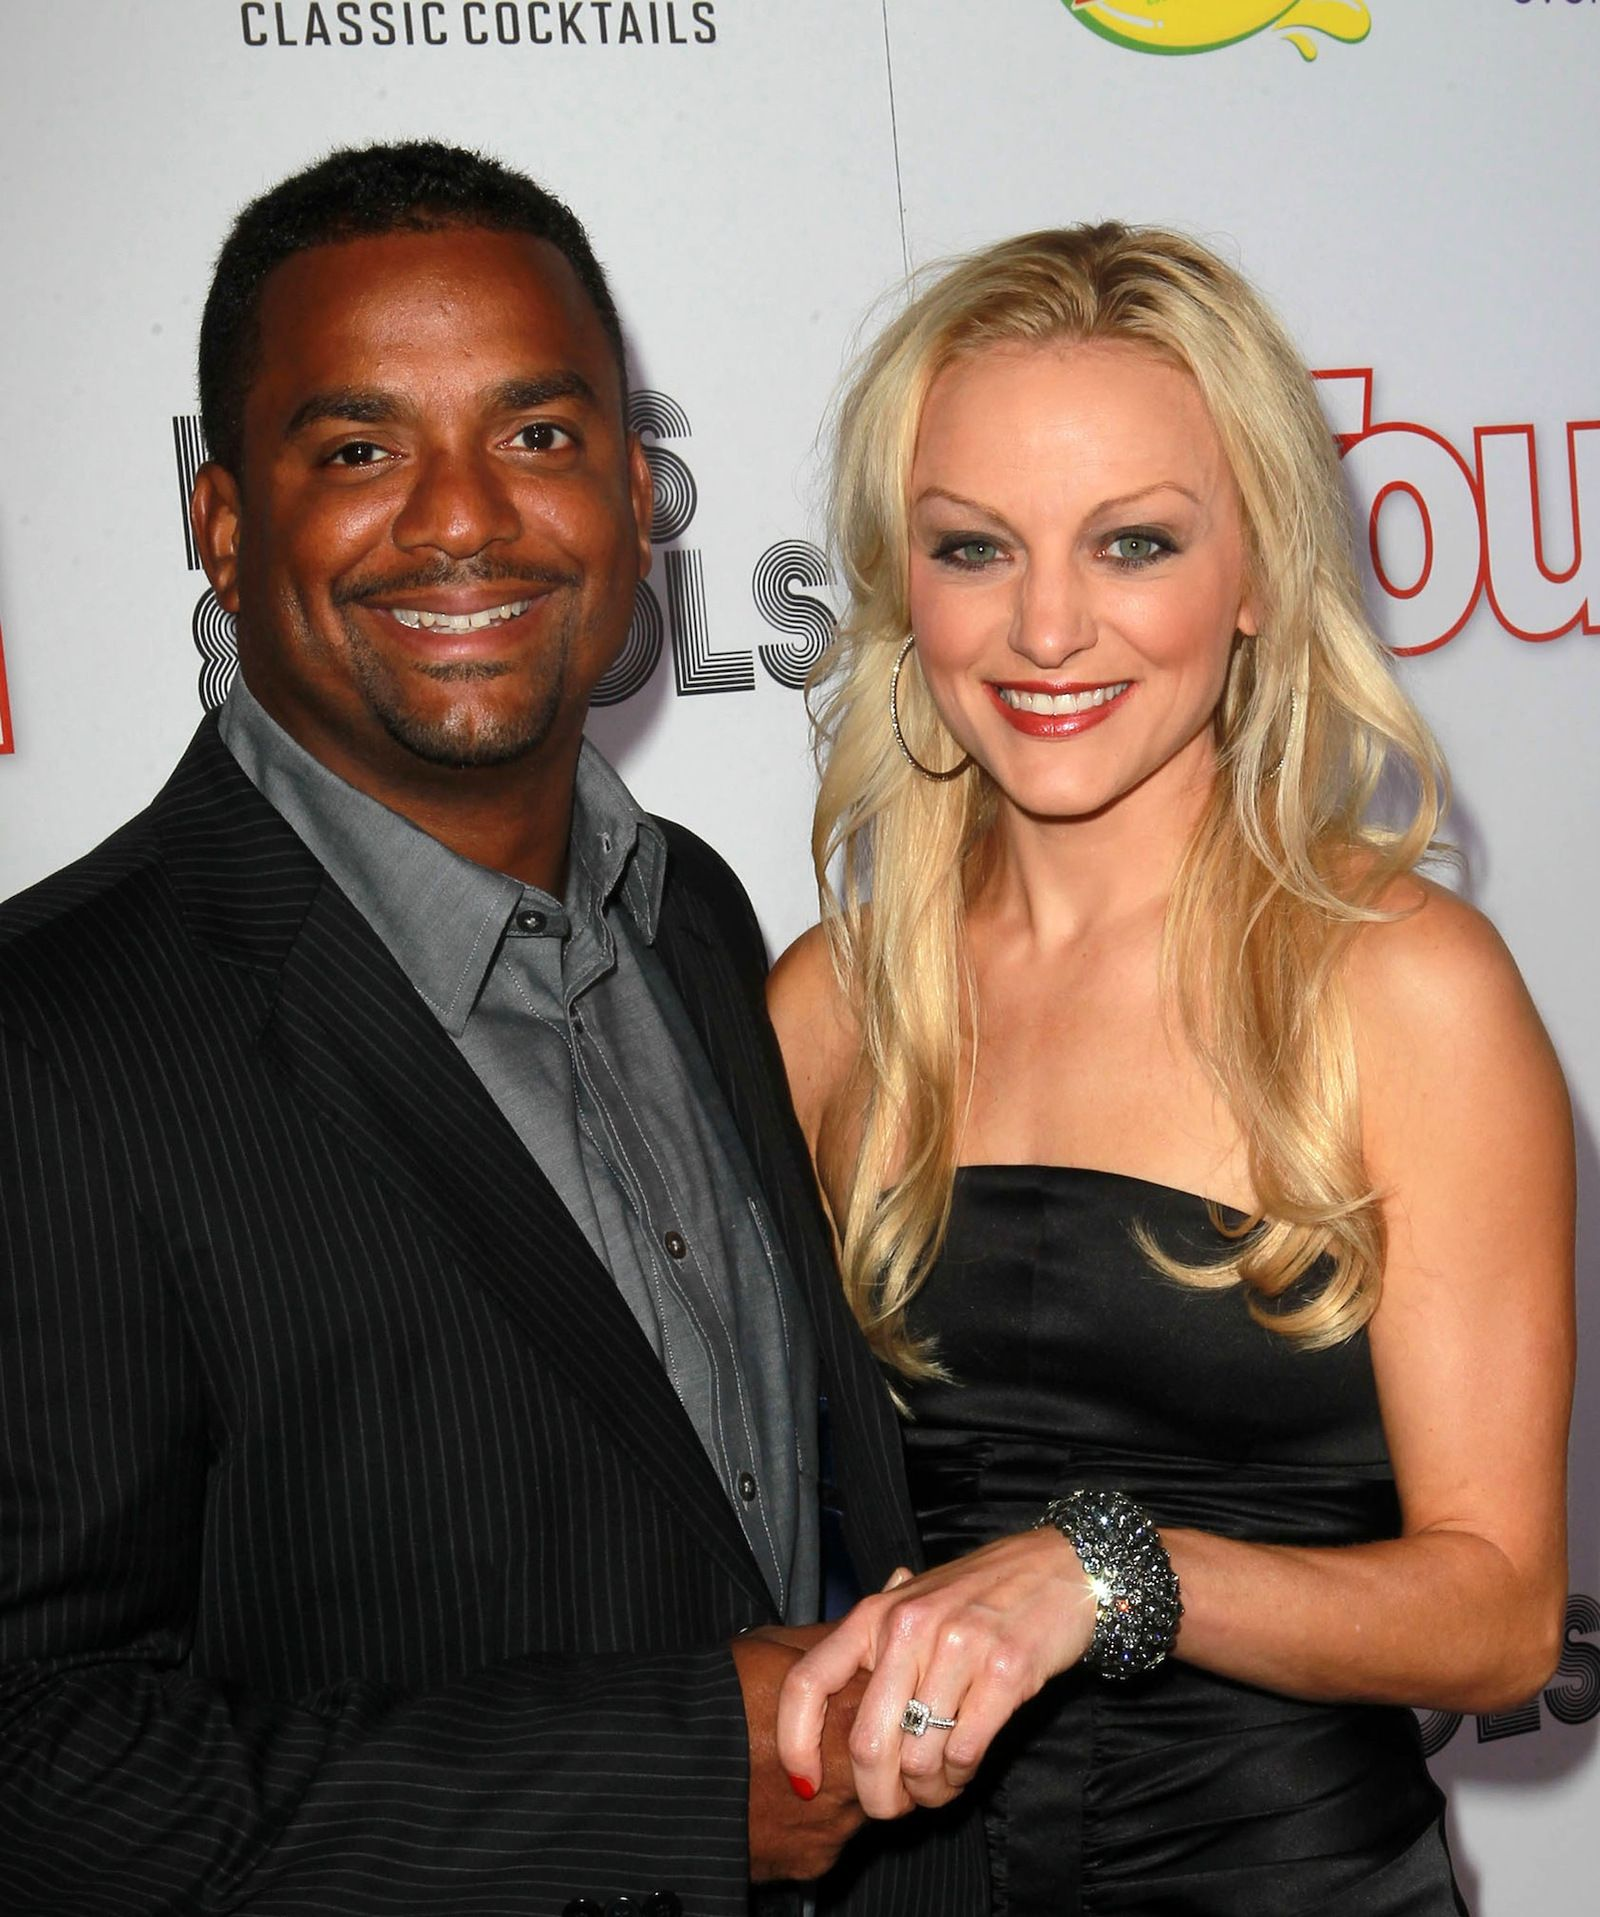 Alfonso Ribeiro And Angela Unkrich Married Alfonso Ribeiro Married Celebrity Couples They tied the knot in october 2012. alfonso ribeiro and angela unkrich